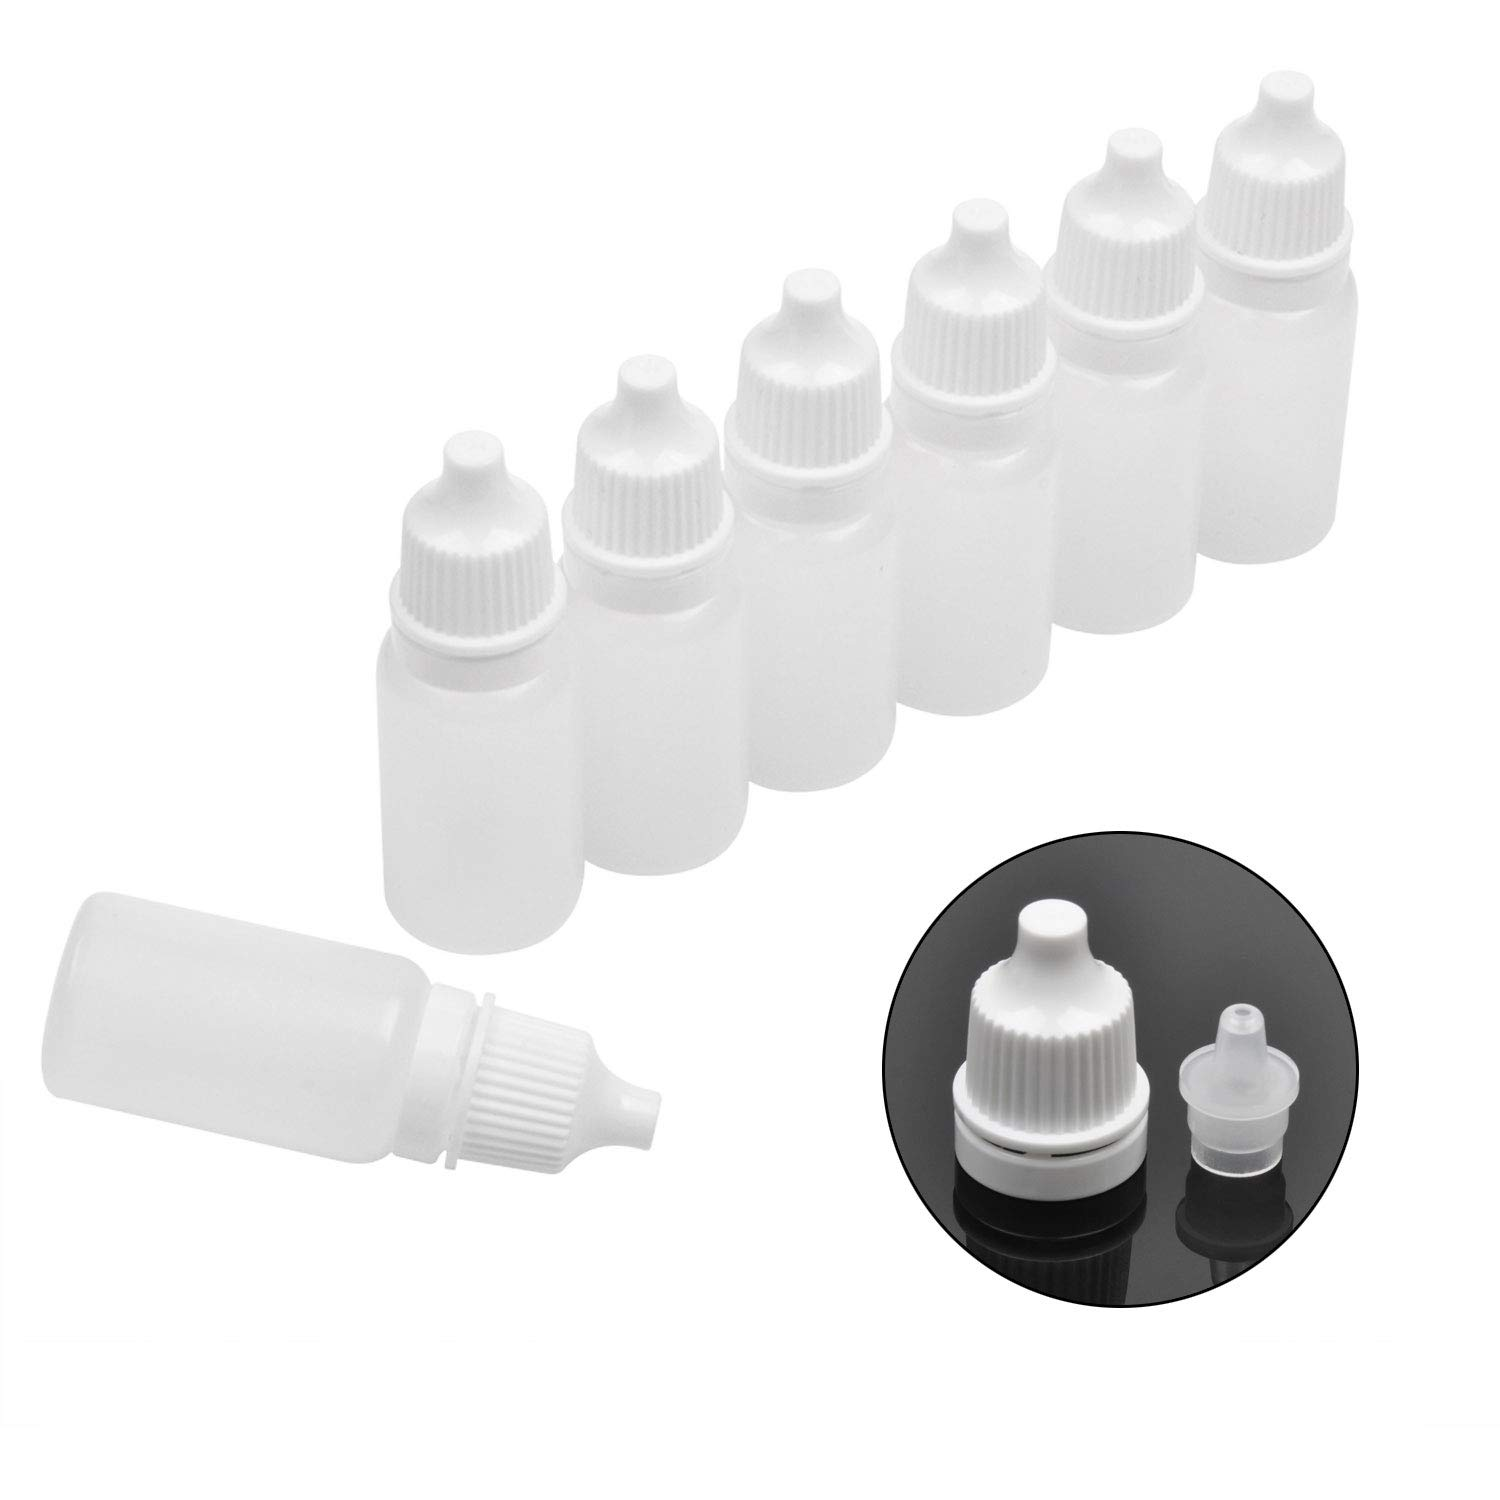 Jespekerere 50 PCS Plastic Dropper Bottle Drop Bottles Empty Applicator Bottle Squeezable Eye Liquid Essential Oil Squeeze Bottle Small Dropper Refillable Containers with Caps 10ml